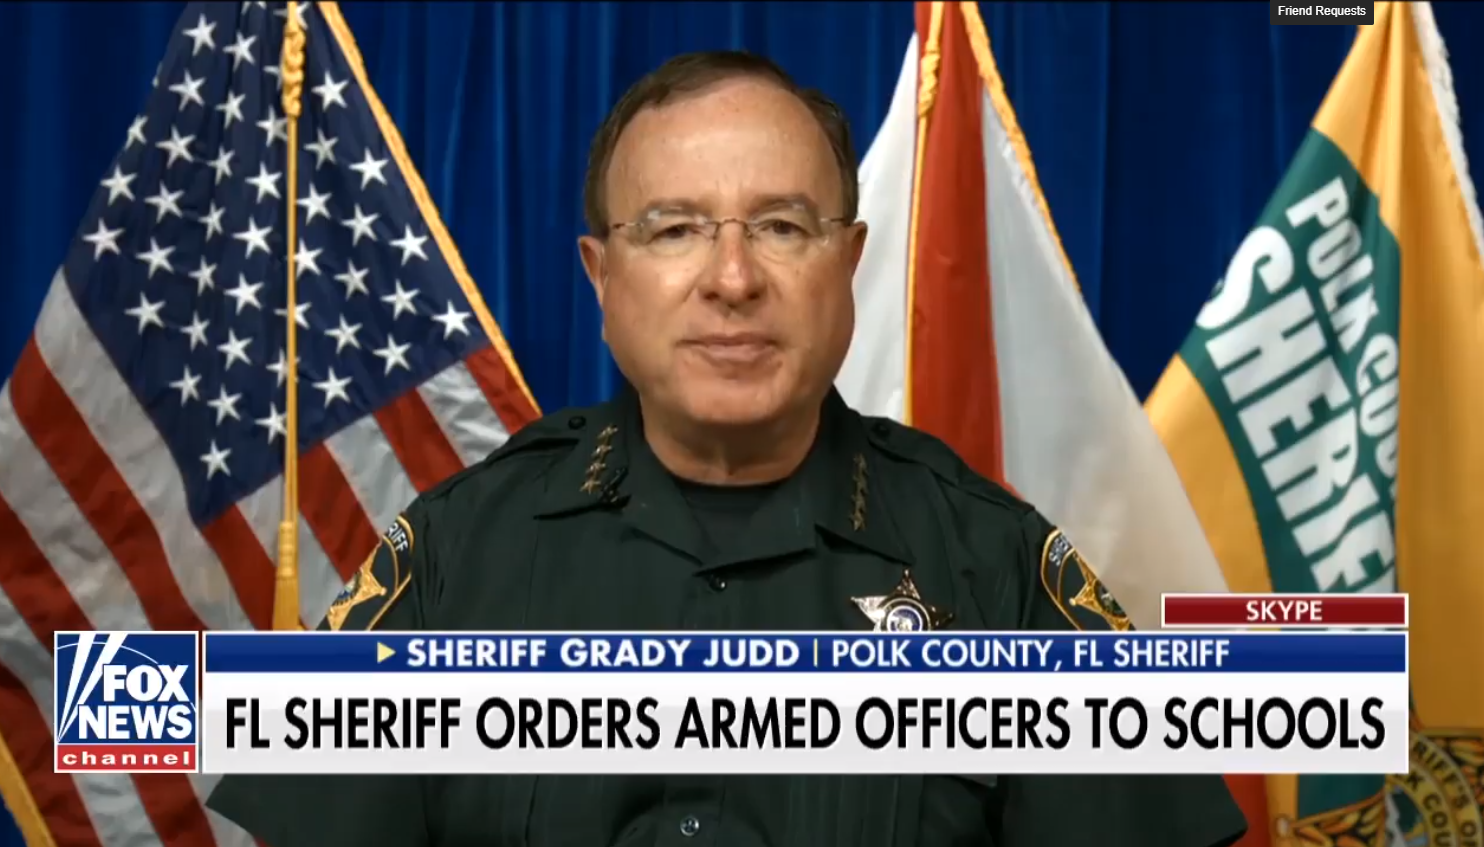 FL Sheriff Orders Armed Officers to Schools After TX Shooting